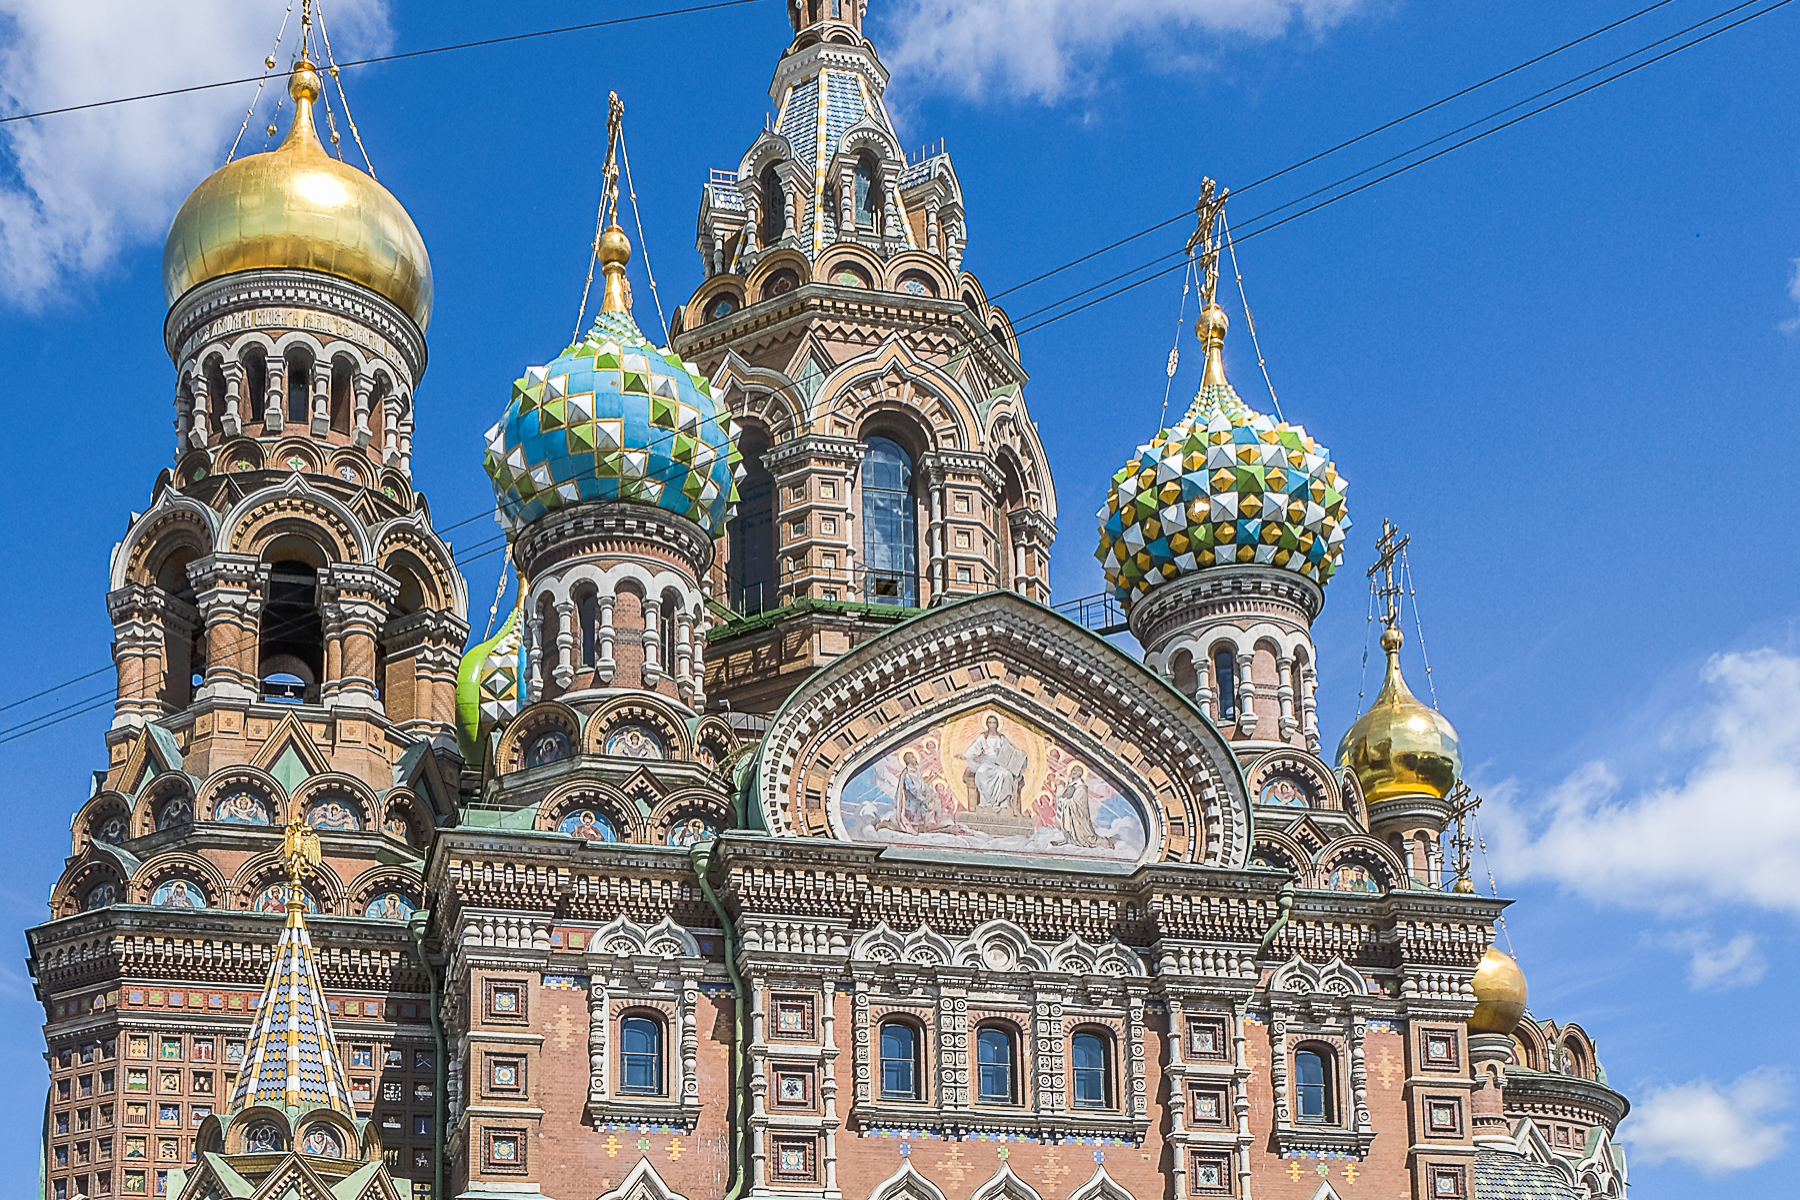 Still @ around 60 degrees north – a glimpse of St Petersburg